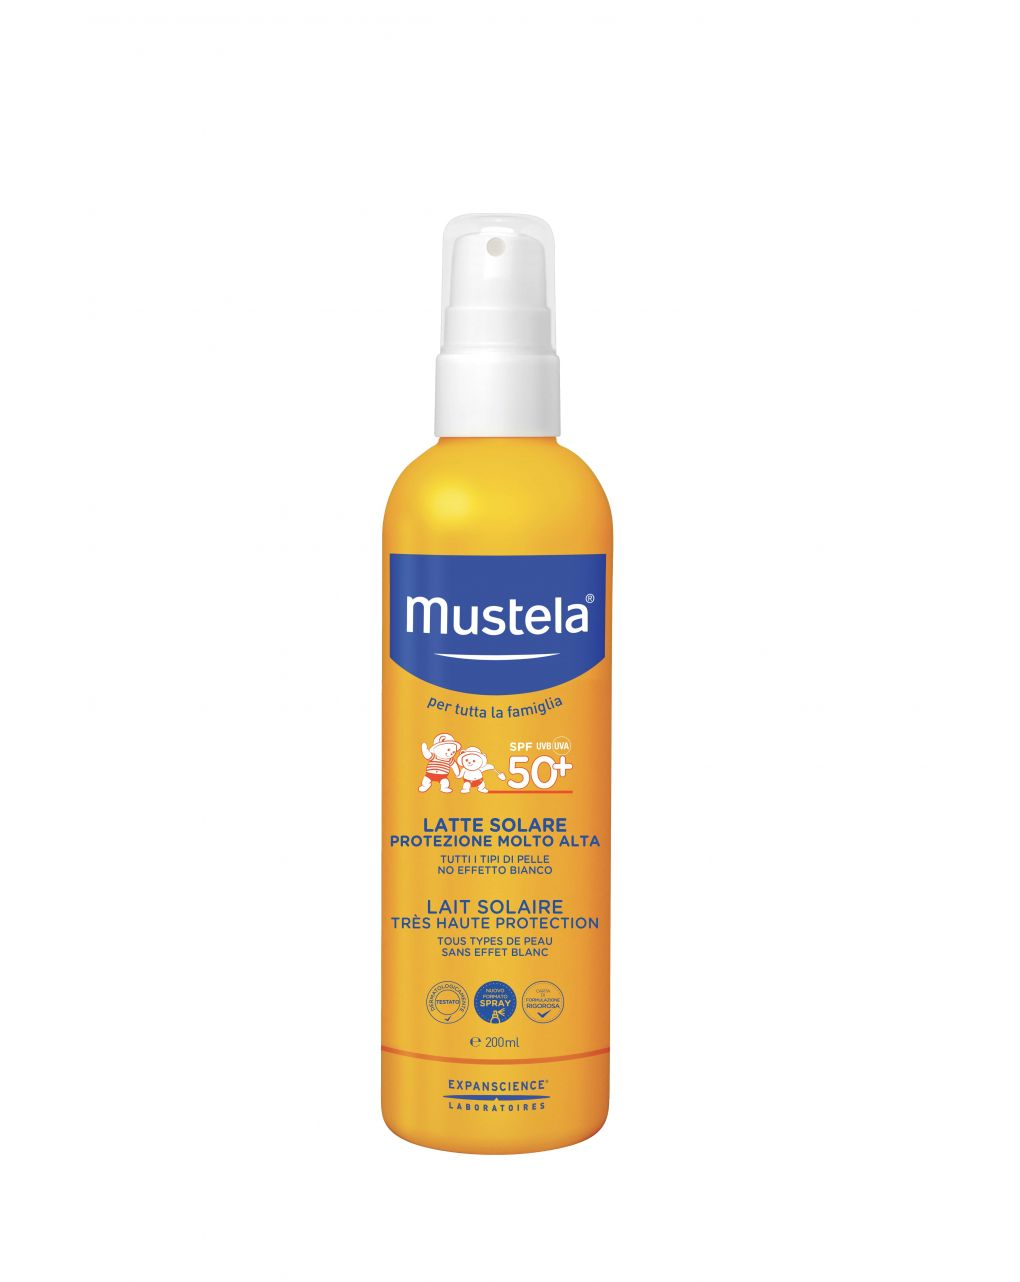 Latte solare spray 200ml - Mustela